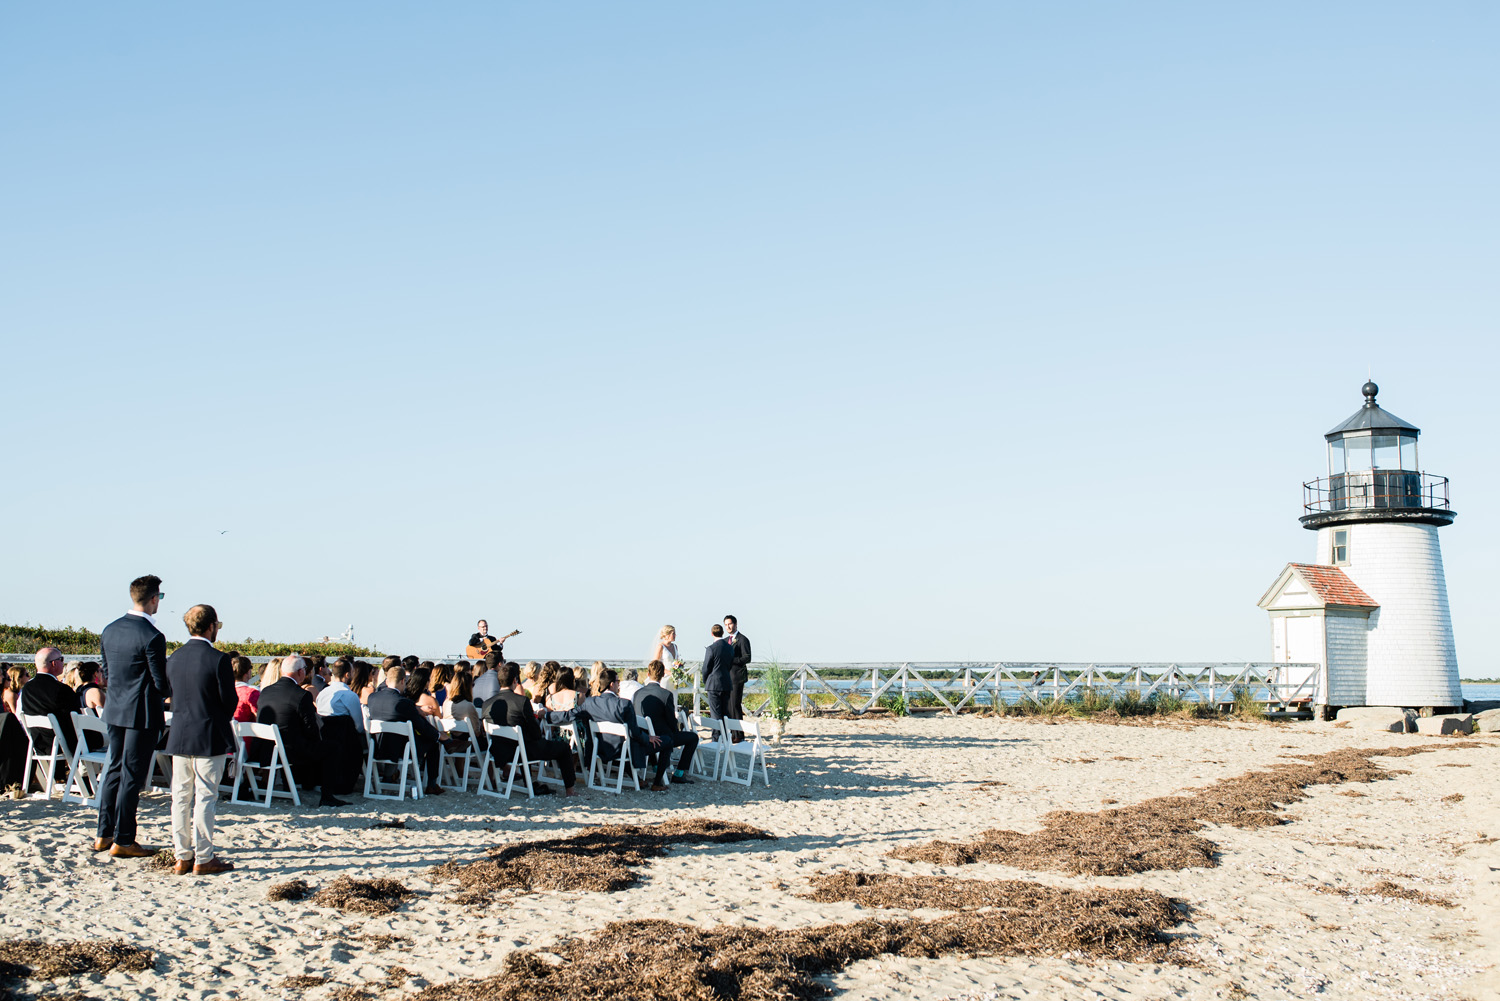 Brant_Point_Nantucket_Hotel_Wedding_Photography_090.jpg